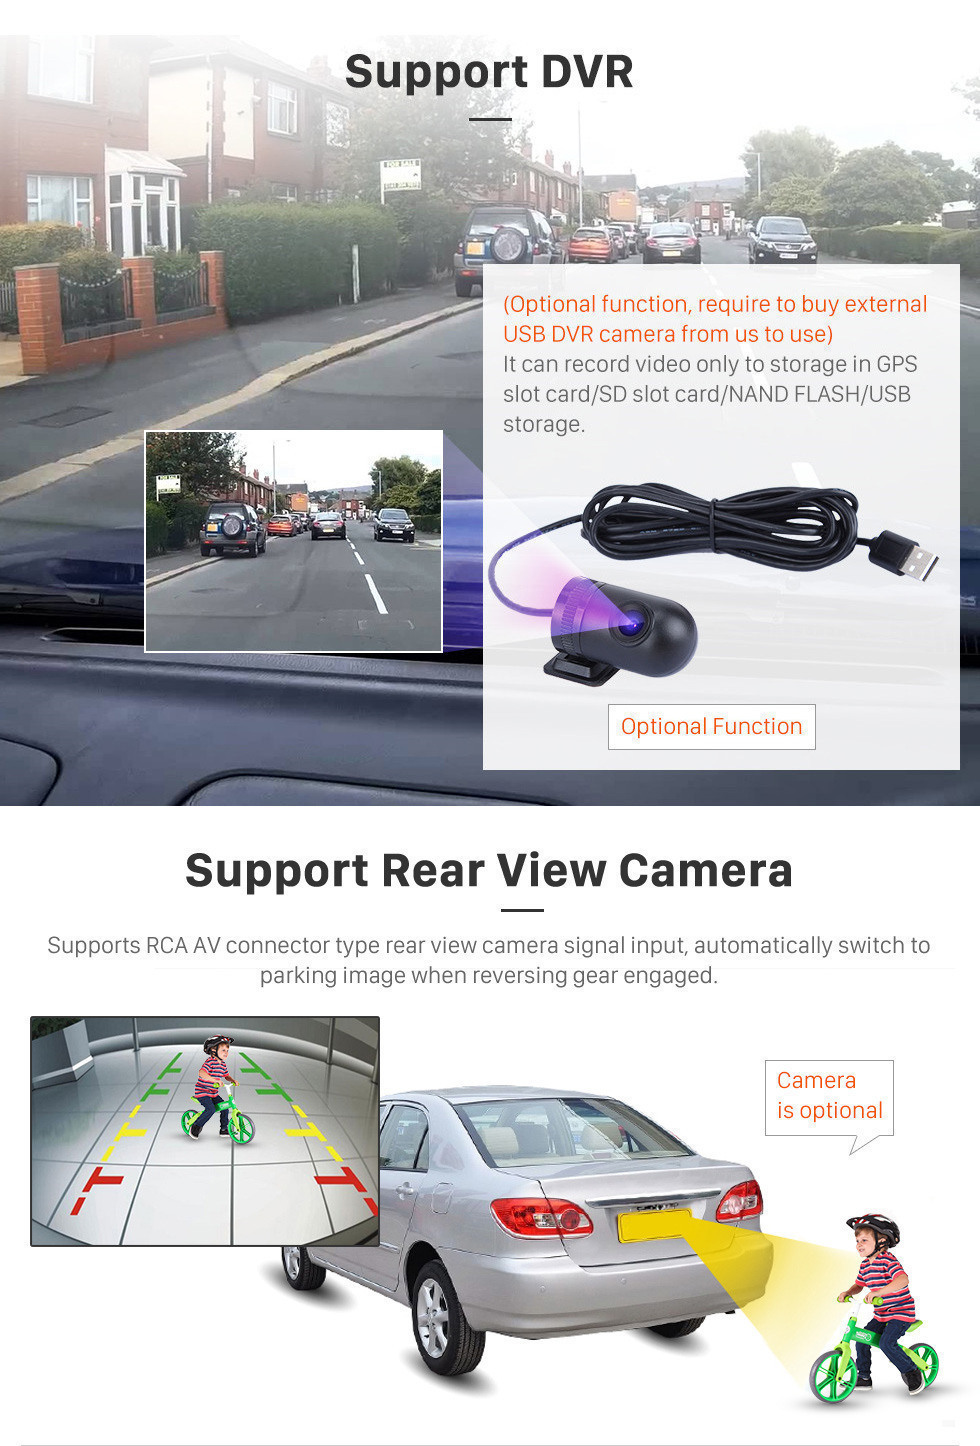 Seicane 9 inch OEM Android 10.0 HD Touchscreen Head Unit GPS Navigation System For 2015-2018 TOYOTA FORTUNER/ COVERT with USB Support 3G/4G WIFI Rearview Camera DVR OBD II